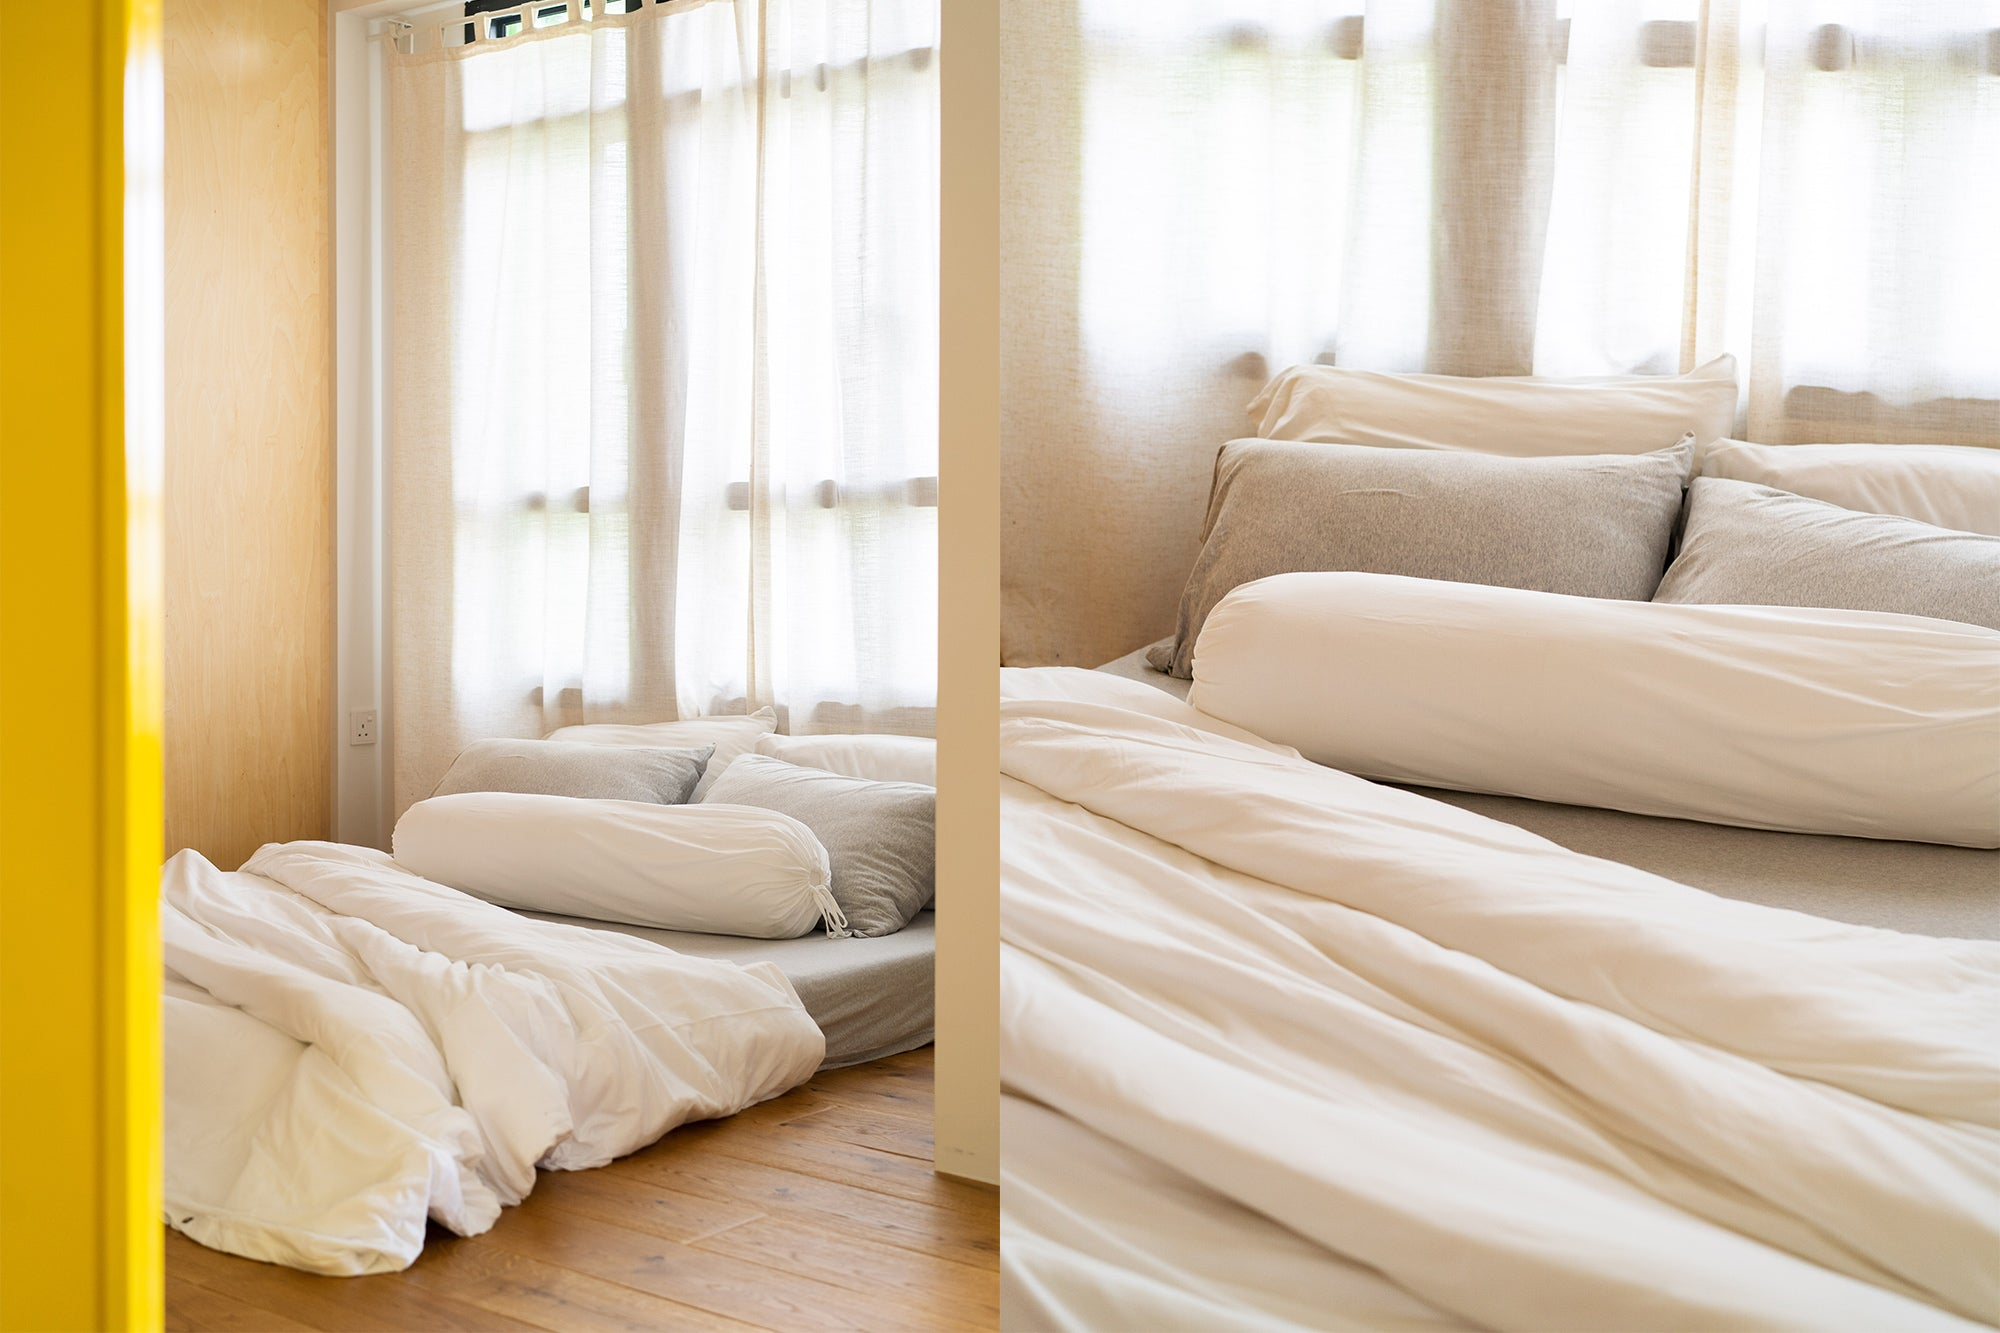 Organic Cotton Bed Sheets Ethical Singapore Sustainable Jersey Cosy Luxury